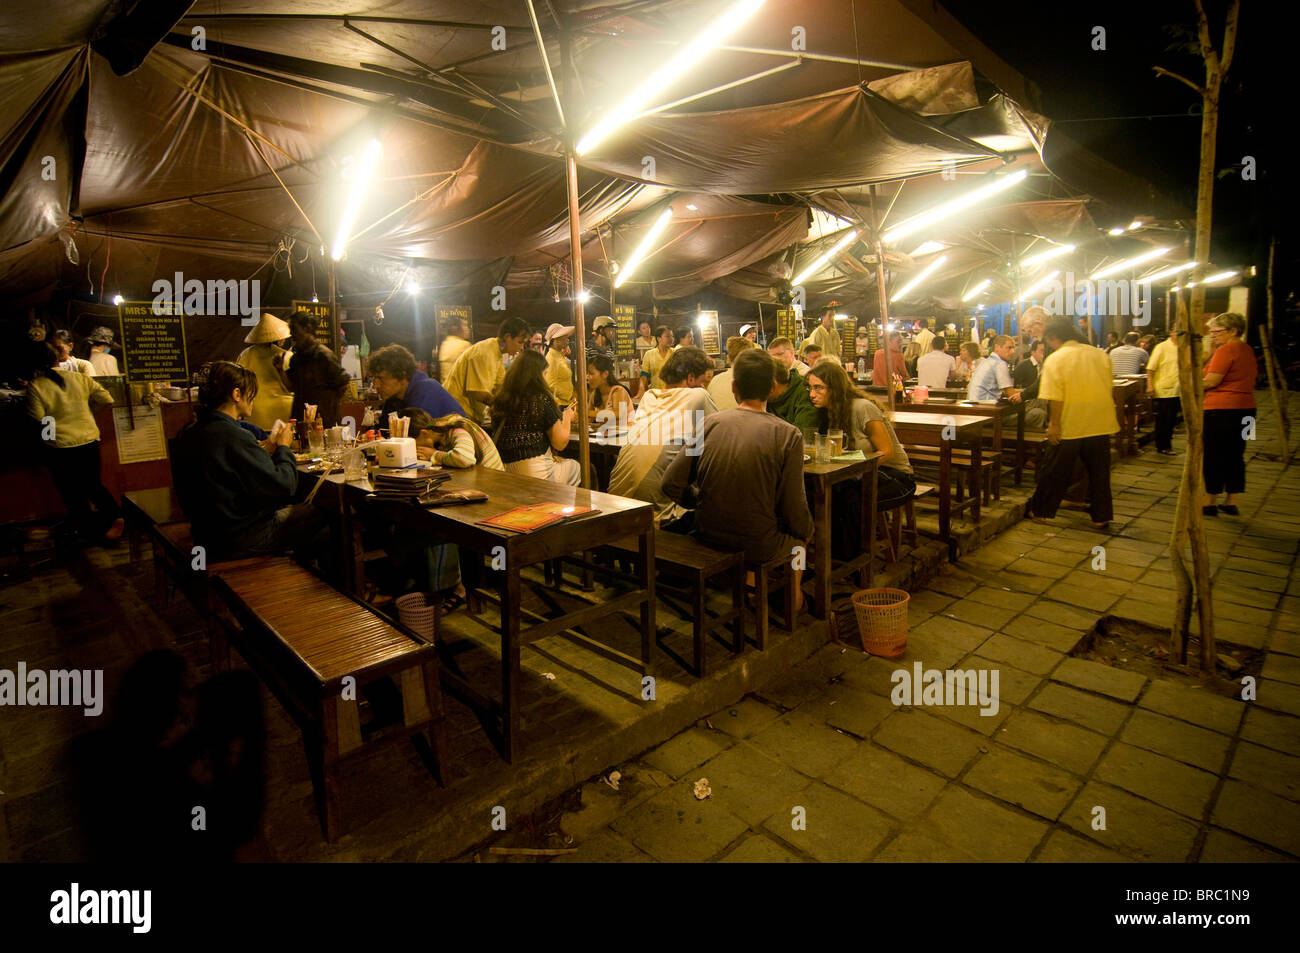 Stock Photo - Night shot of food stalls, Hoi An, Vietnam, Indochina